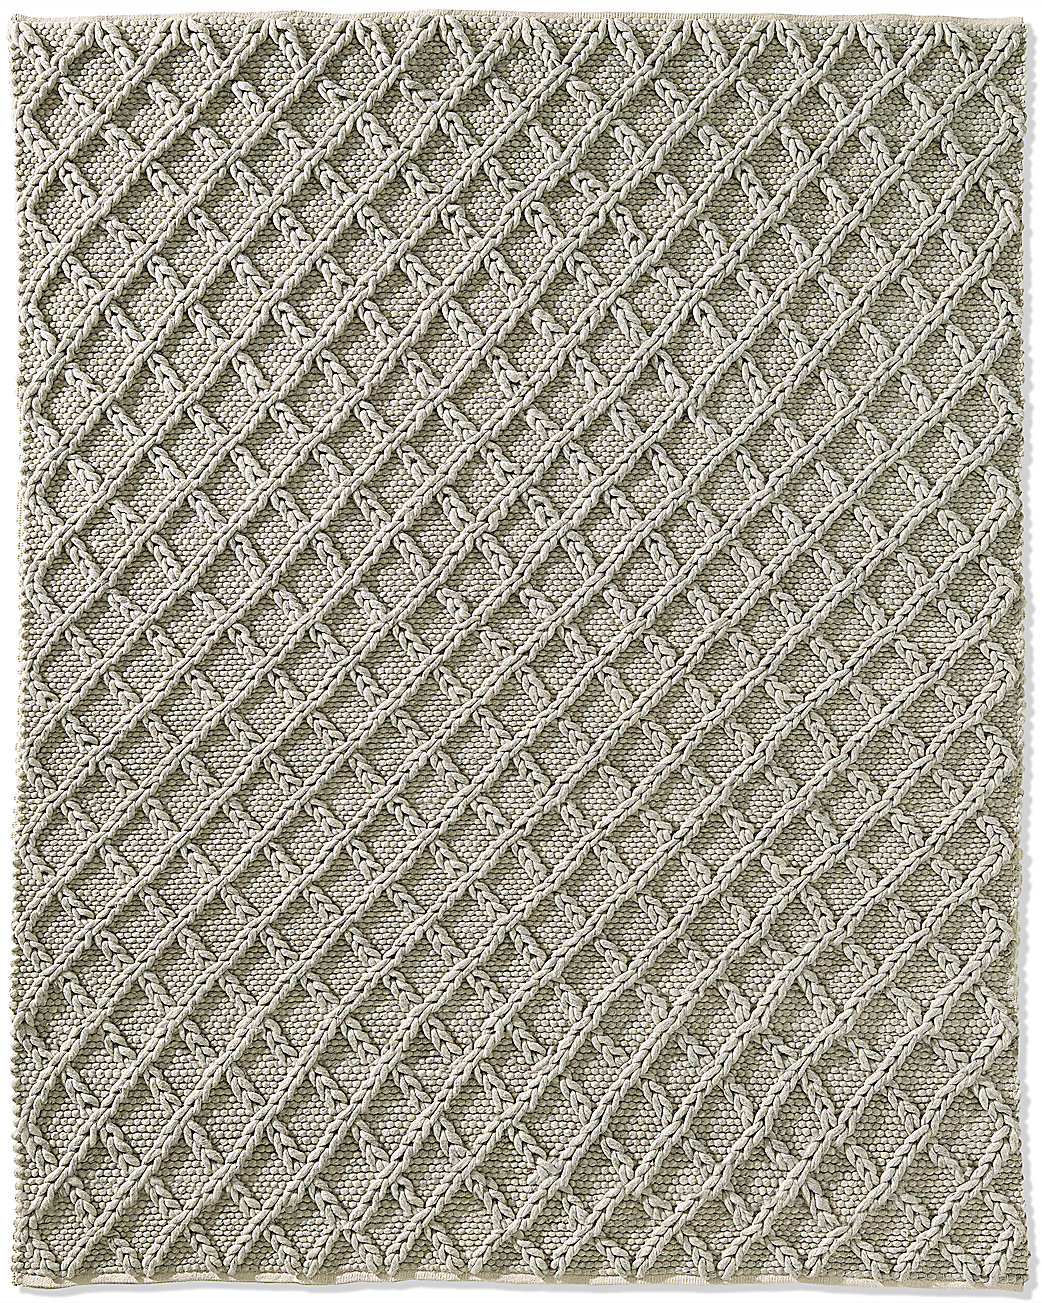 Raised Diamond Wool Rug - Fog